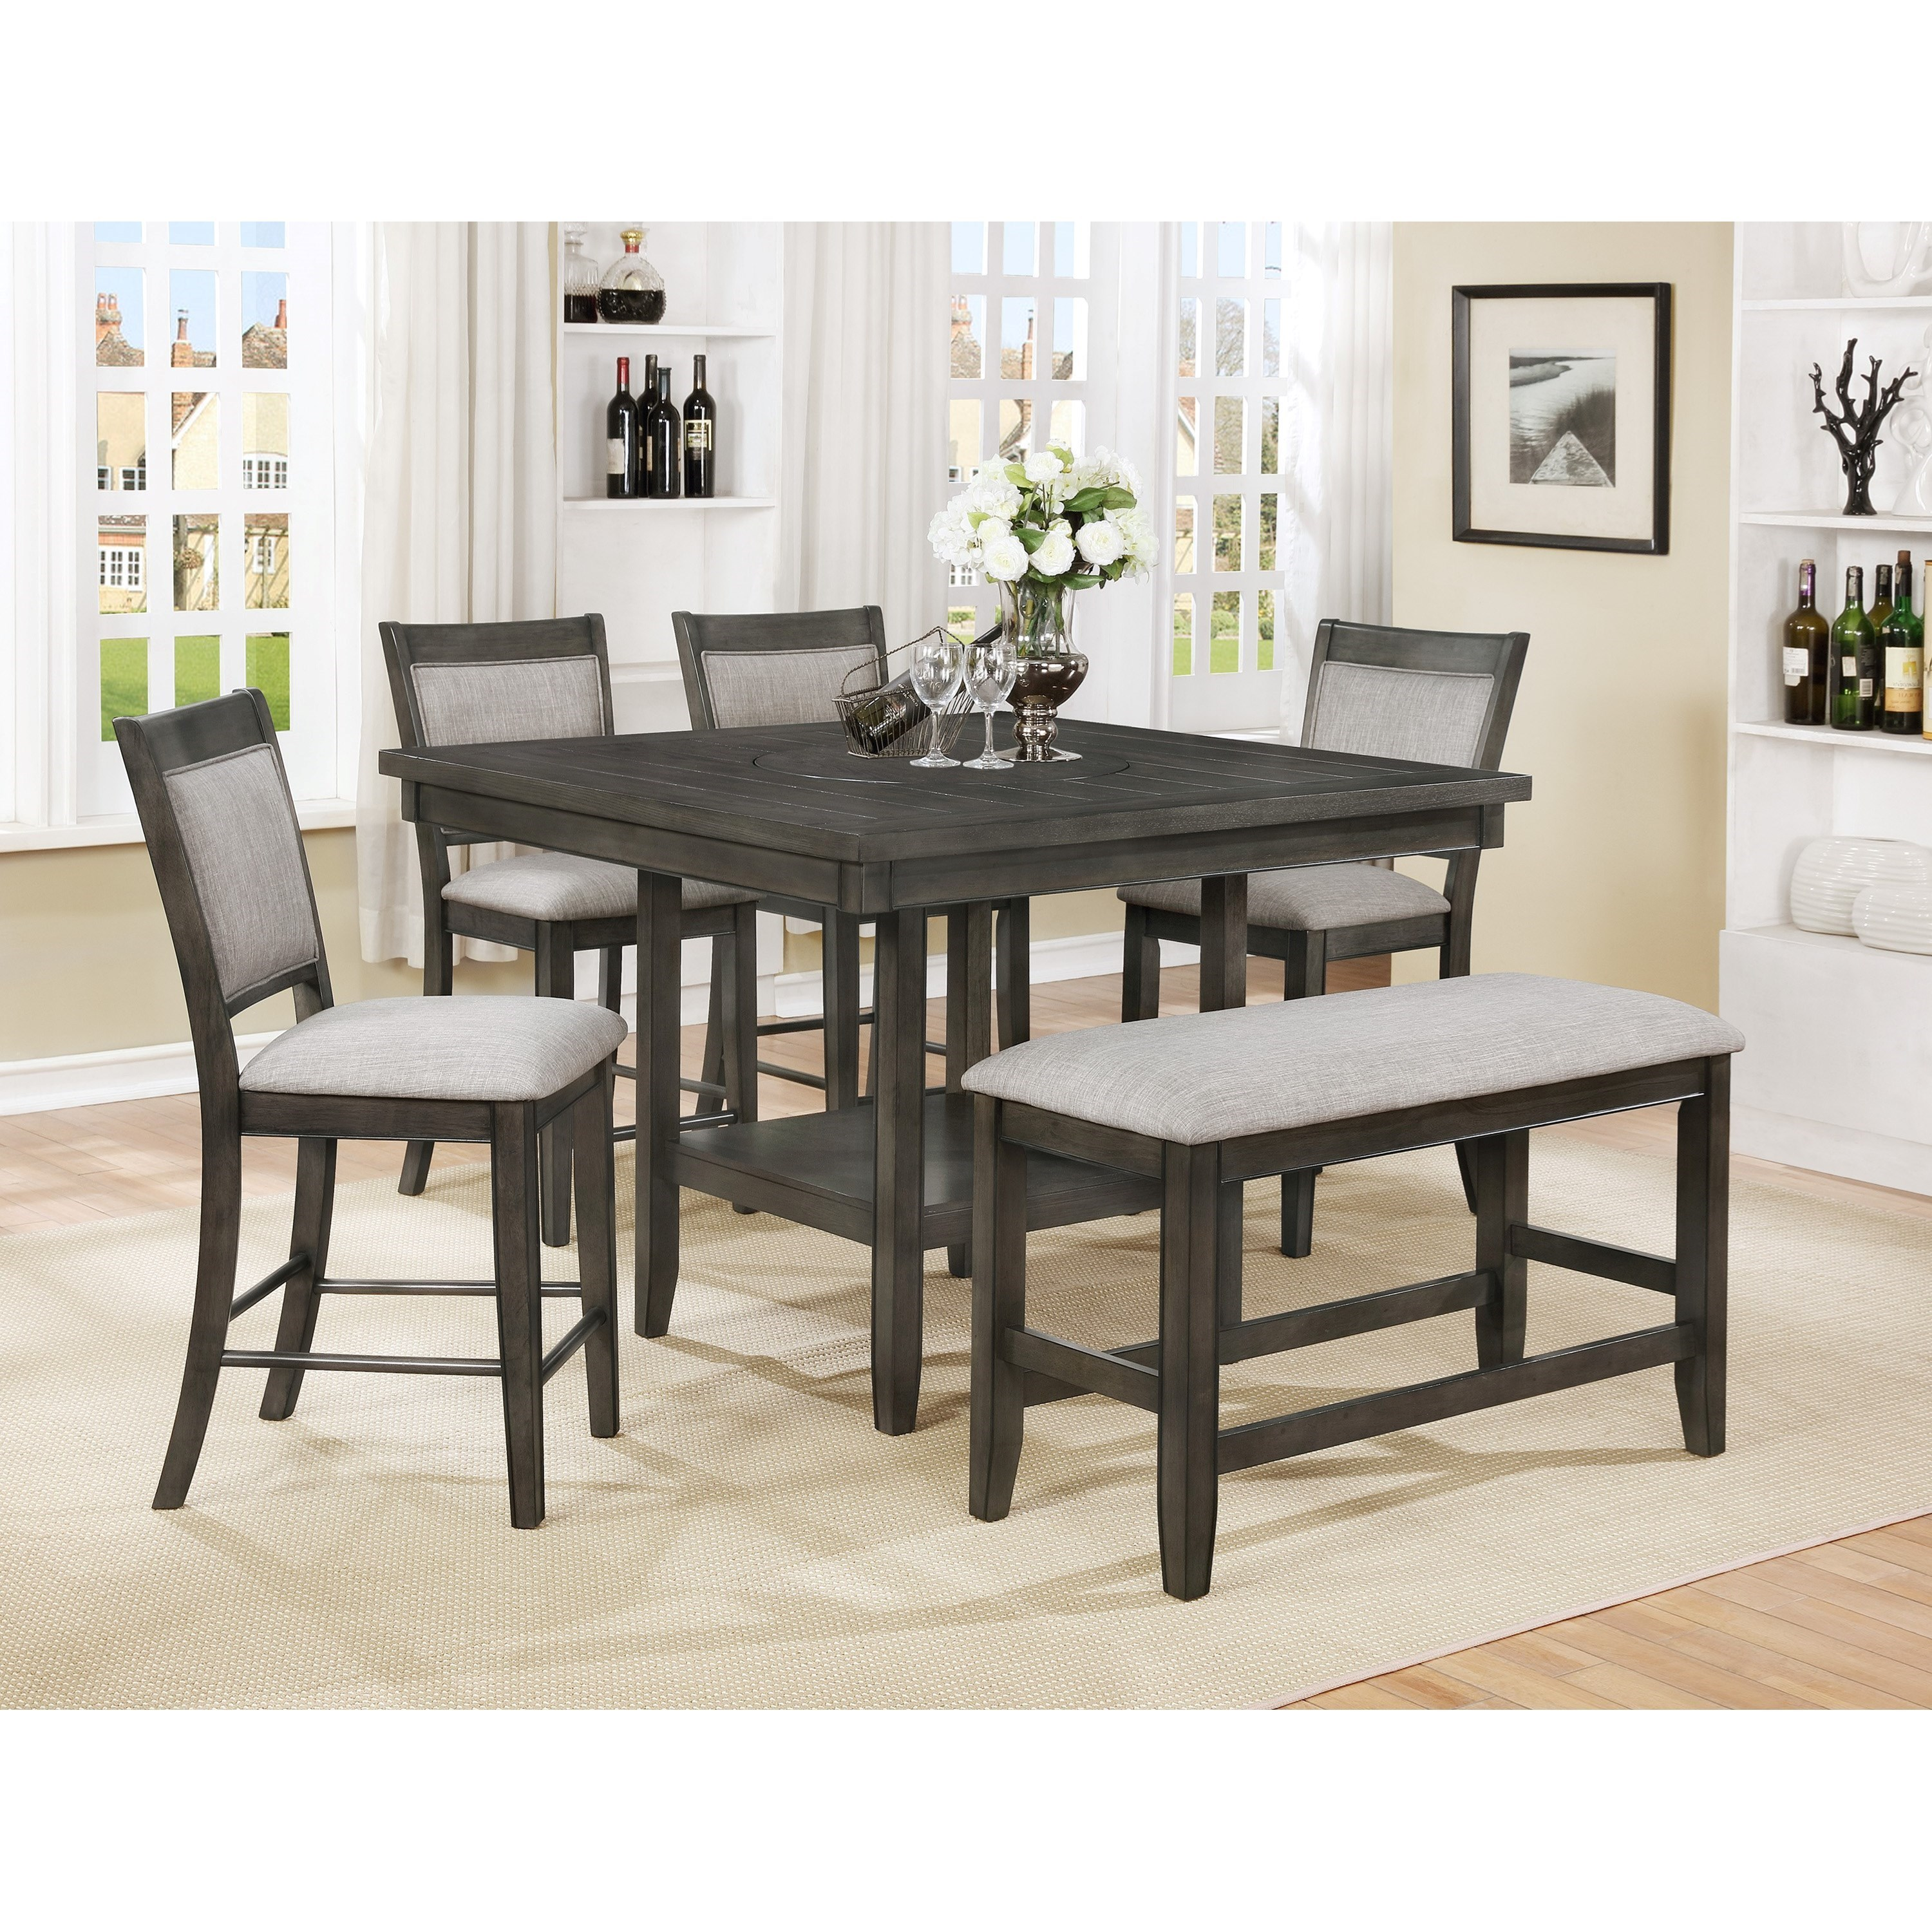 Ordinaire Crown Mark Fulton6 Pc Counter Height Table, Chair U0026 Bench Set ...